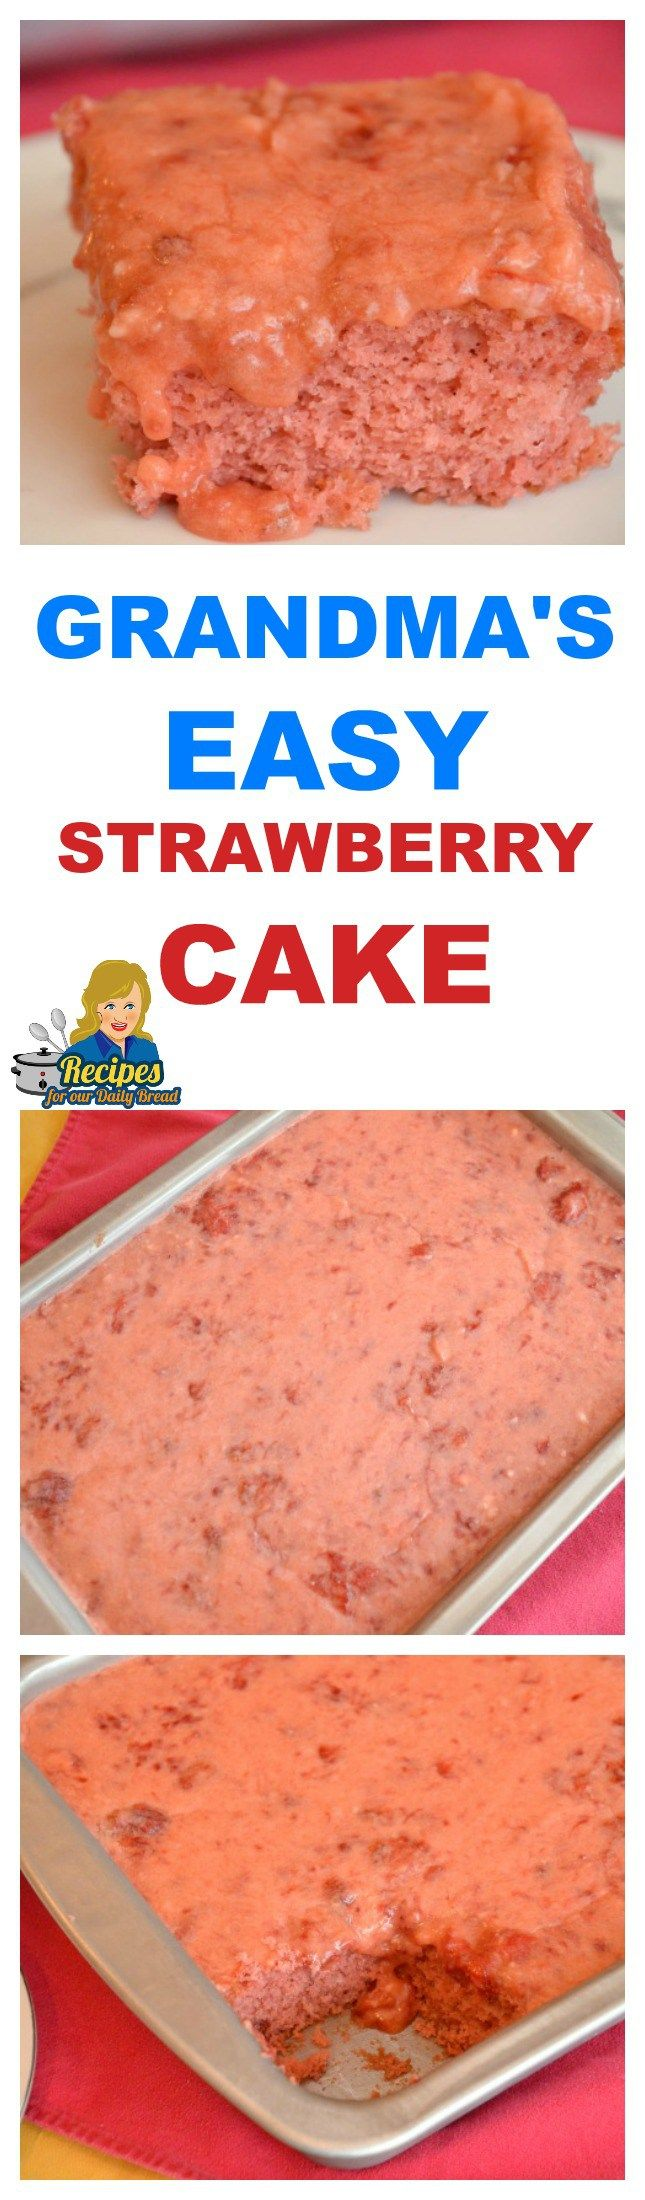 HOW TO MAKE GRANDMAS EASY SPECIAL STRAWBERRY CAKE - This Strawberry Cake is worth it! If you are looking for an easy delicious strawberry cake, I promise you will be drooling over this one.  SEE RECIPE HERE: http://recipesforourdailybread.com/easy-strawberry-cake/